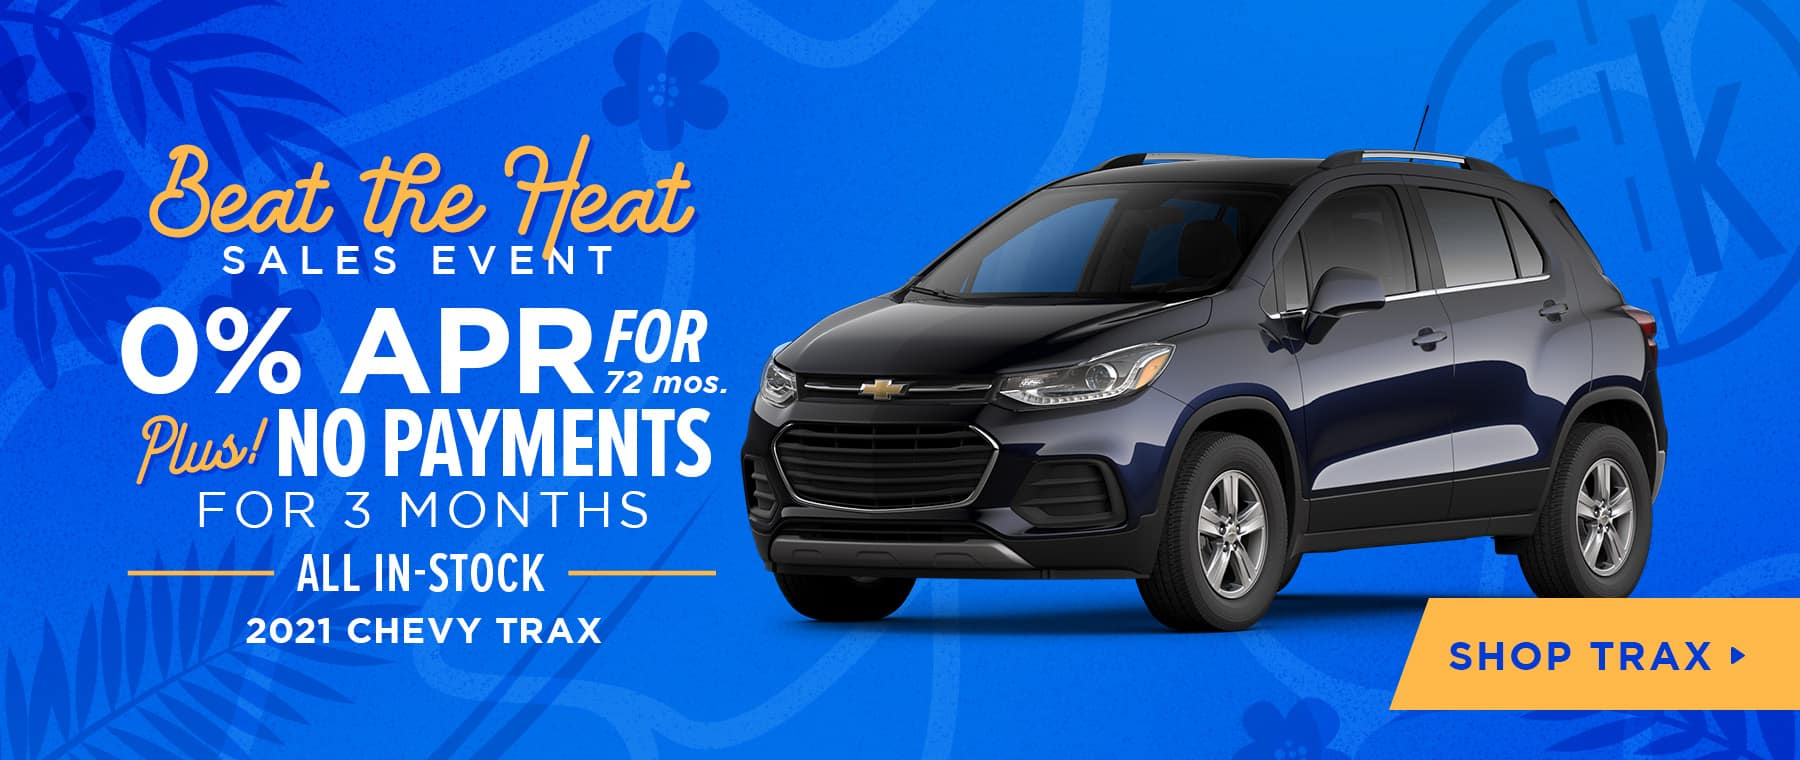 0% APR for 72 mos. PLUS No Payments for 3 Months All In-Stock 2021 Chevy Trax